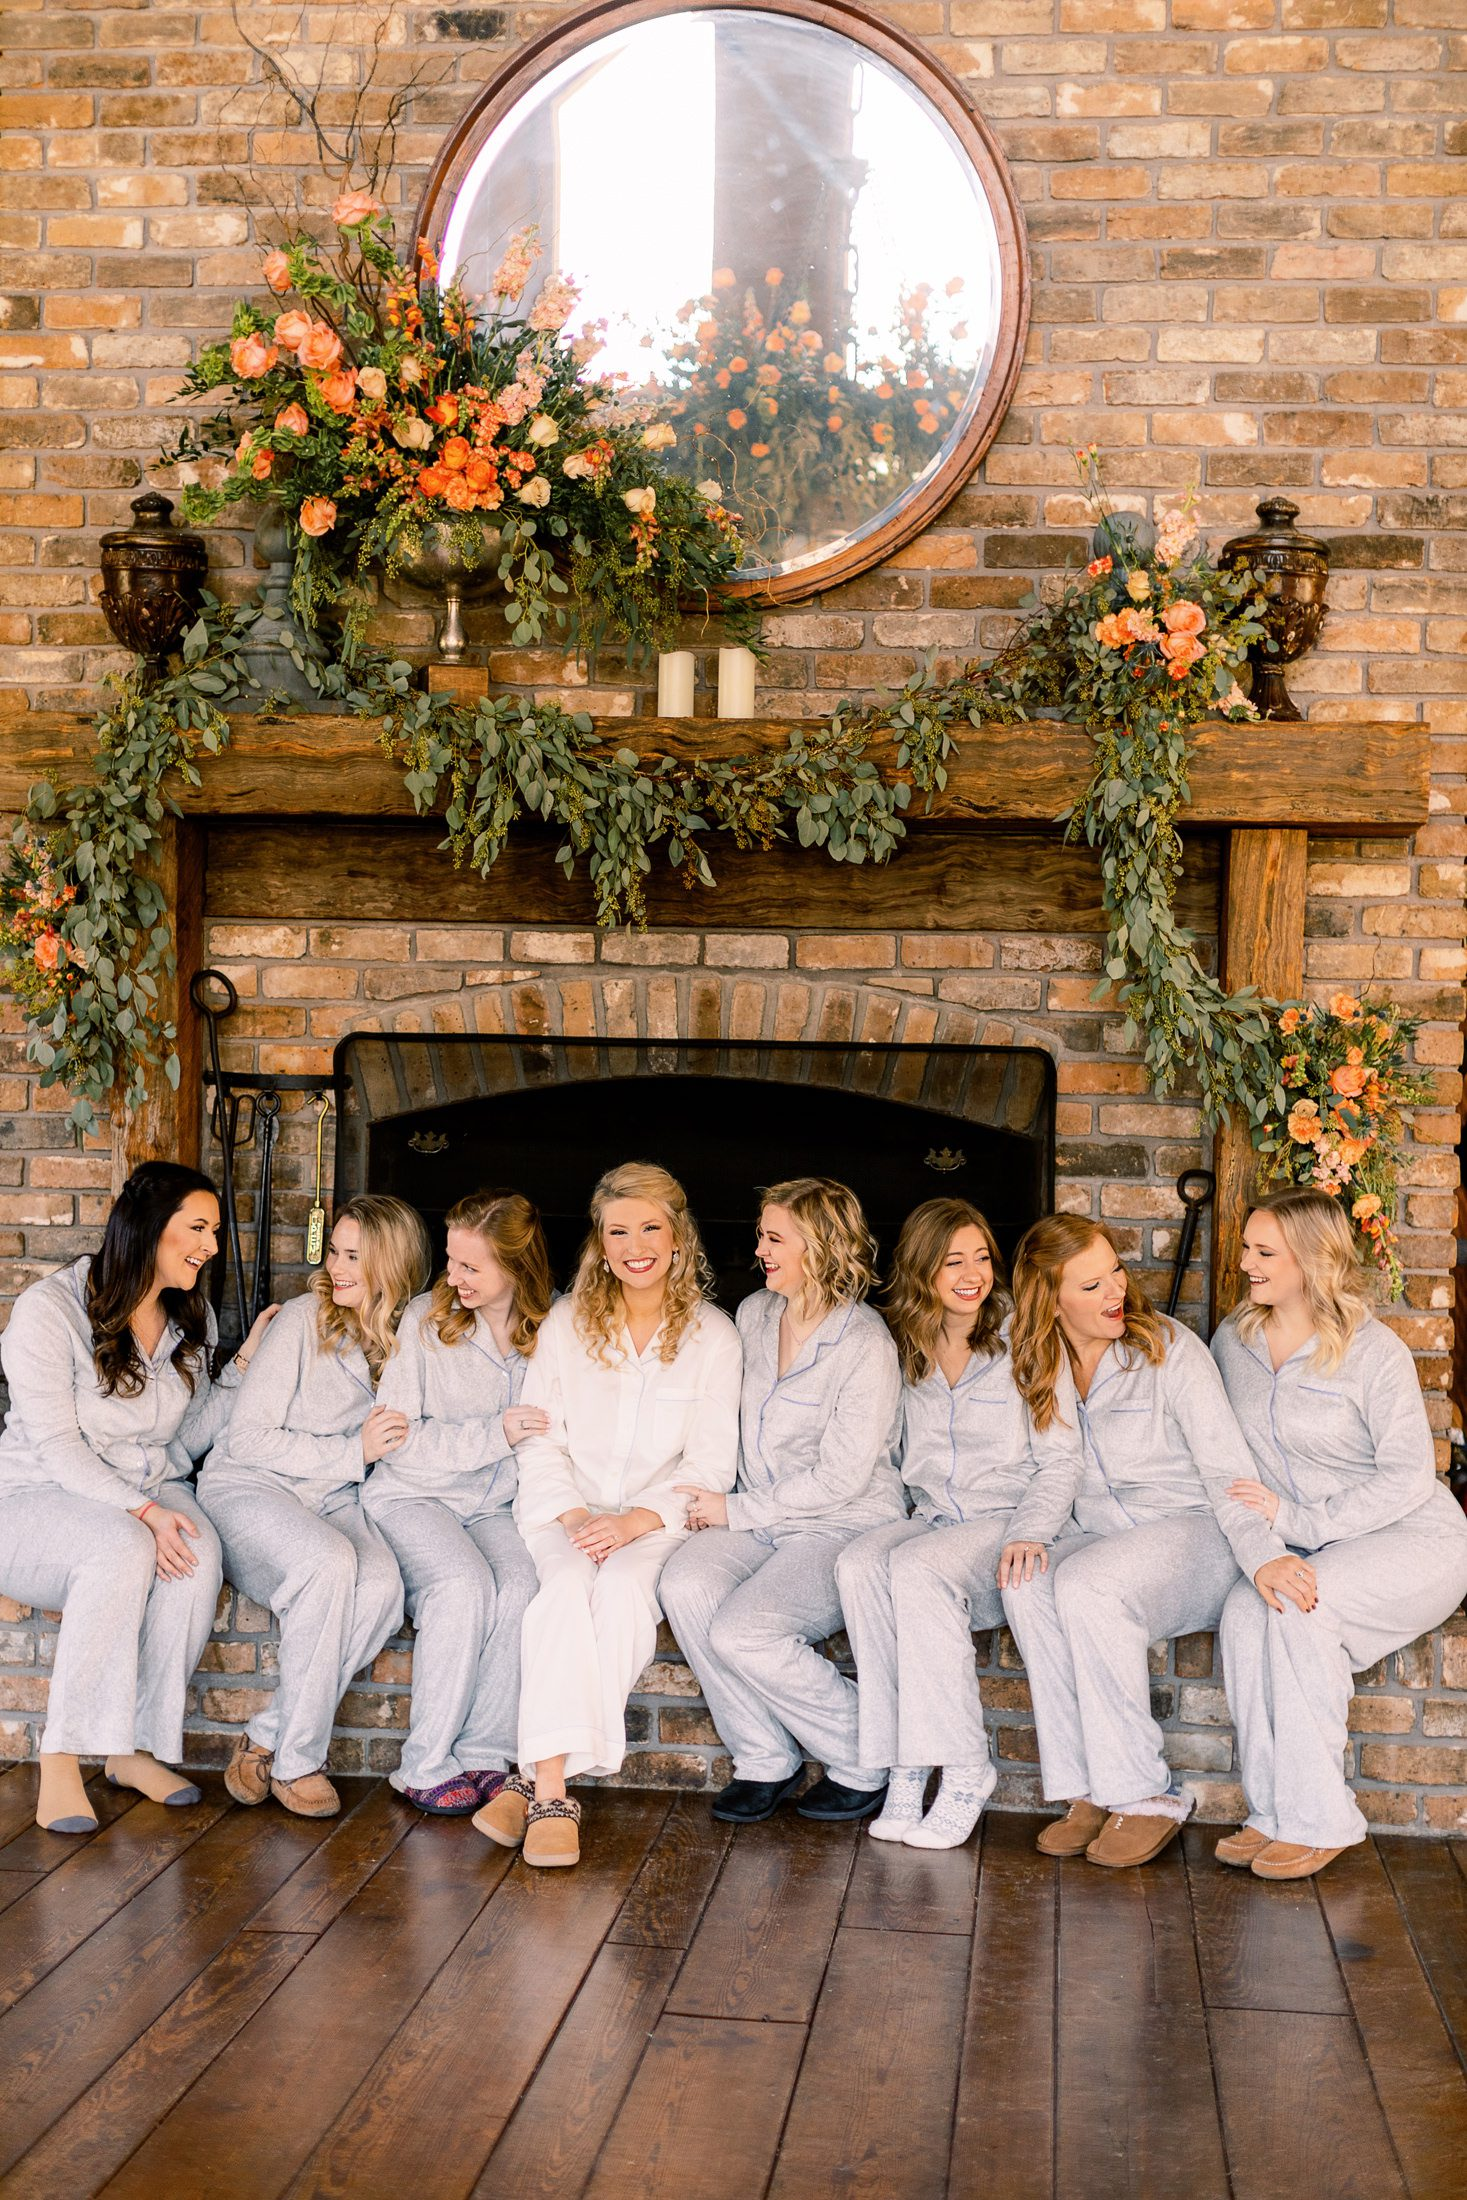 Bridesmaids in getting ready attire sitting in front of a fireplace decorated with floral arrangements